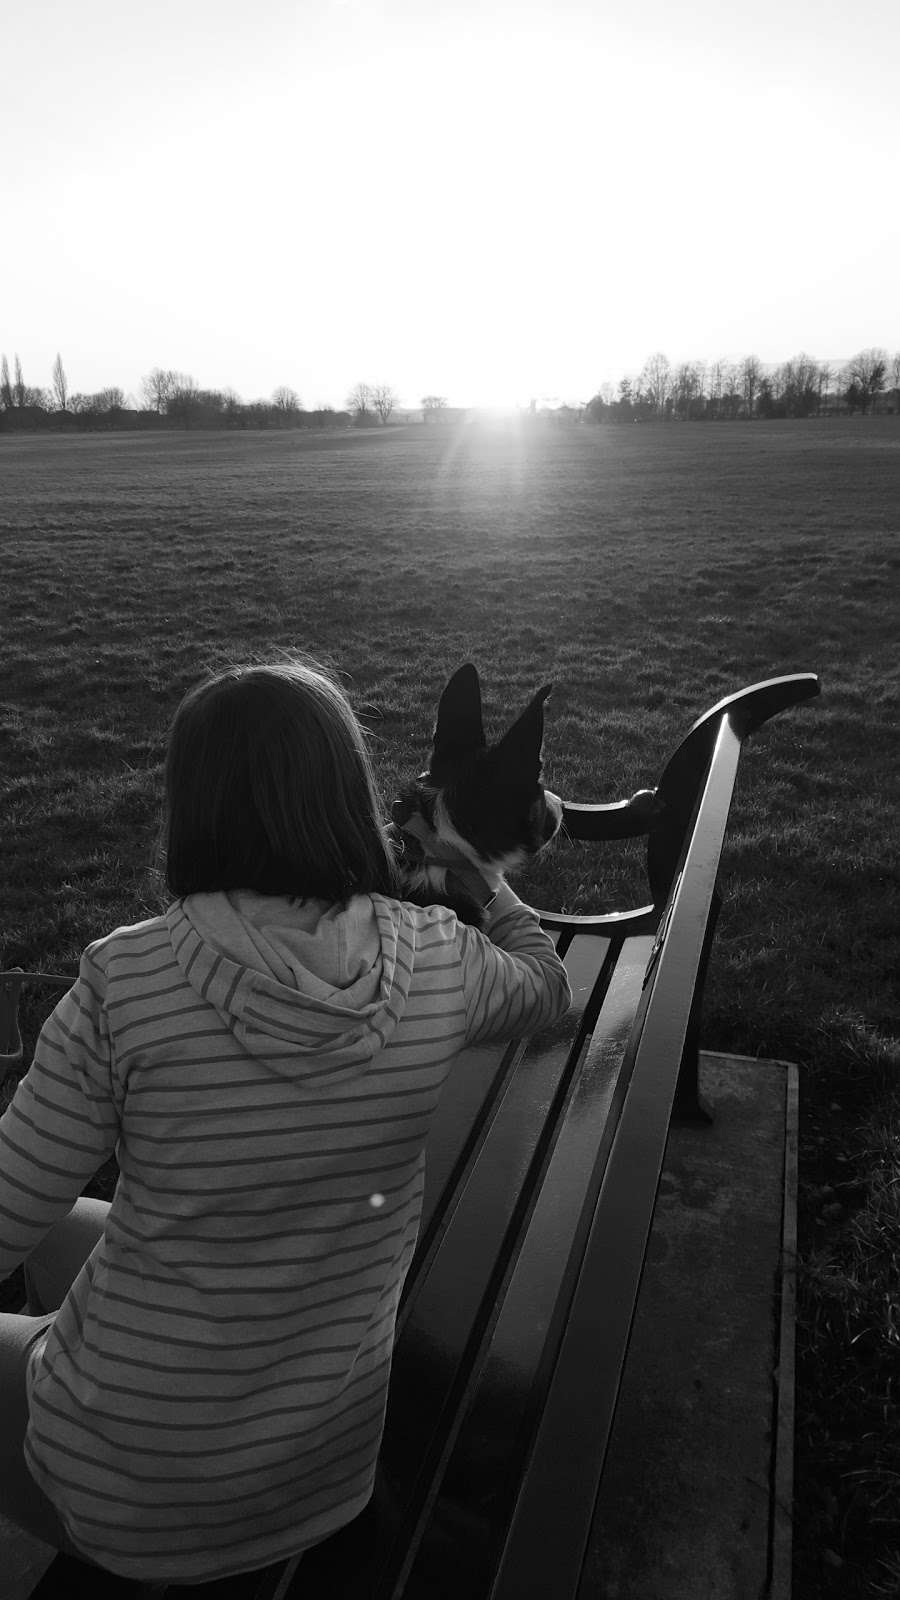 My Two Girls: Black And White Photo Project